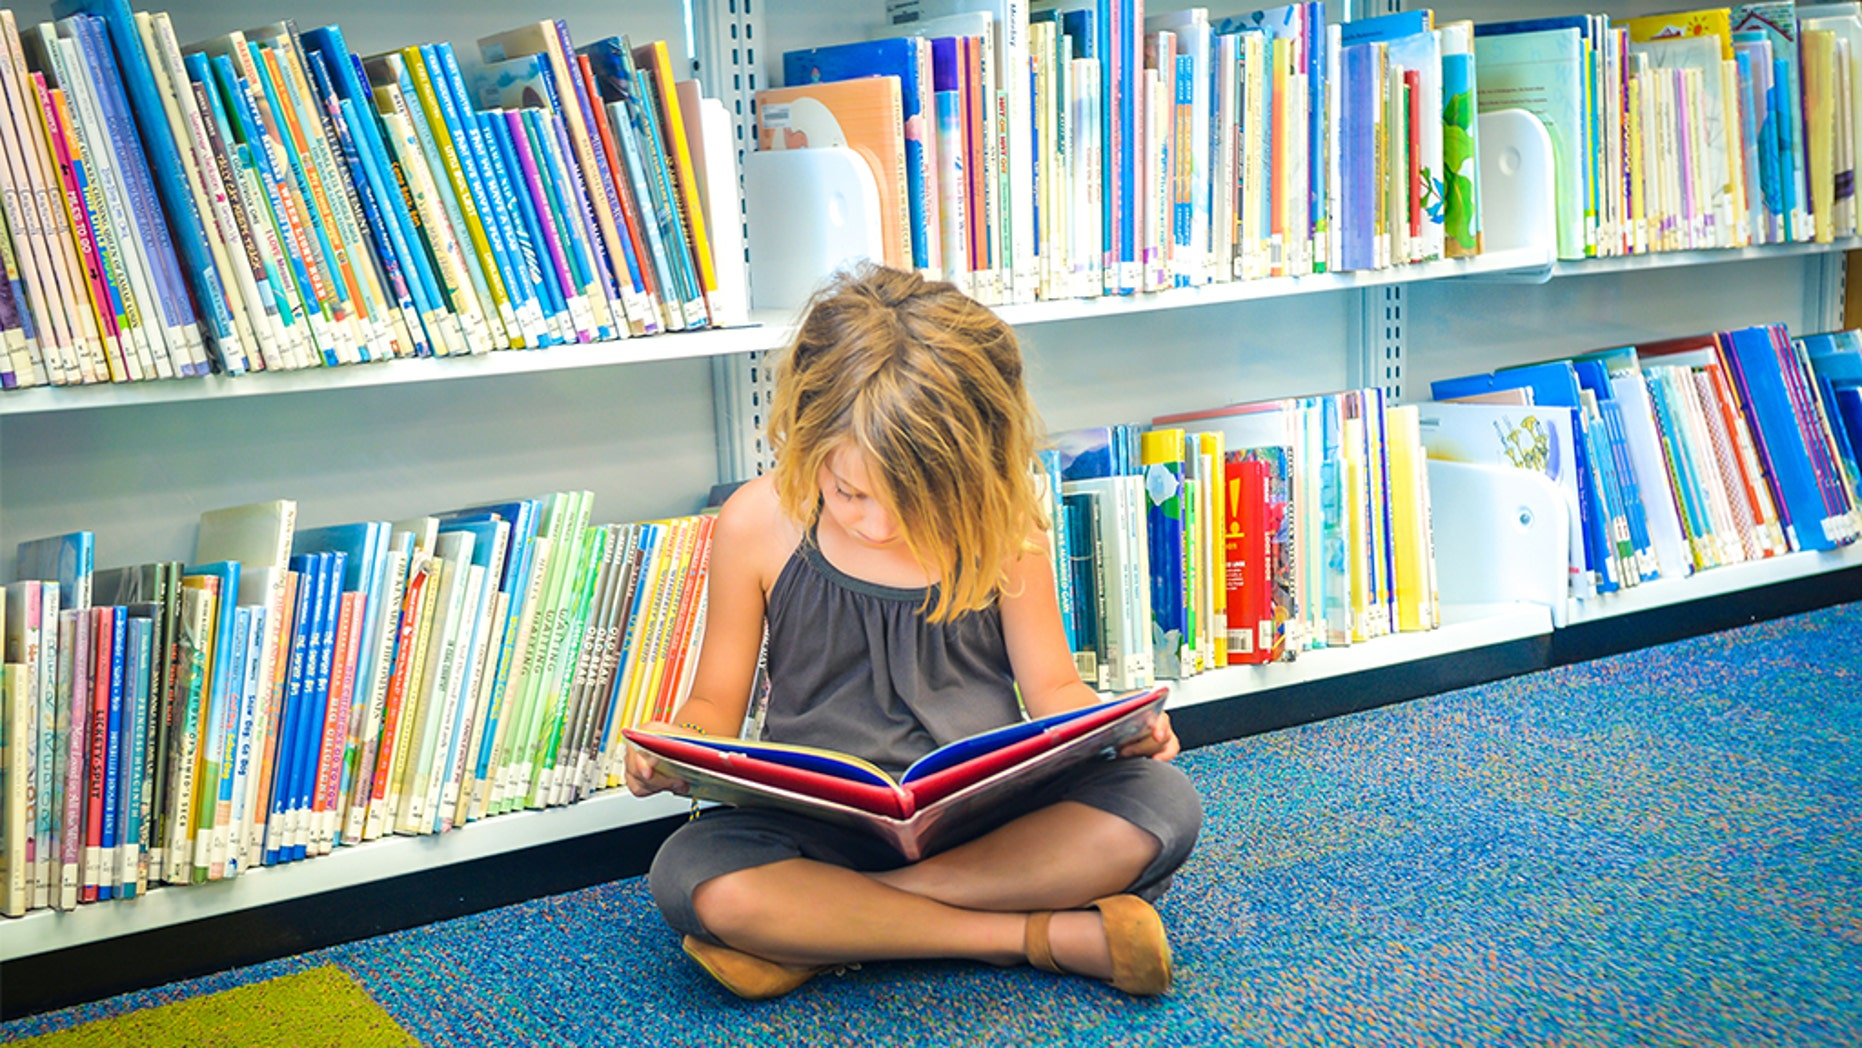 Schools in Barcelona have removed 200 children's books includingsome classic fairytales because they perpetuate sexist stereotypes. (istock)